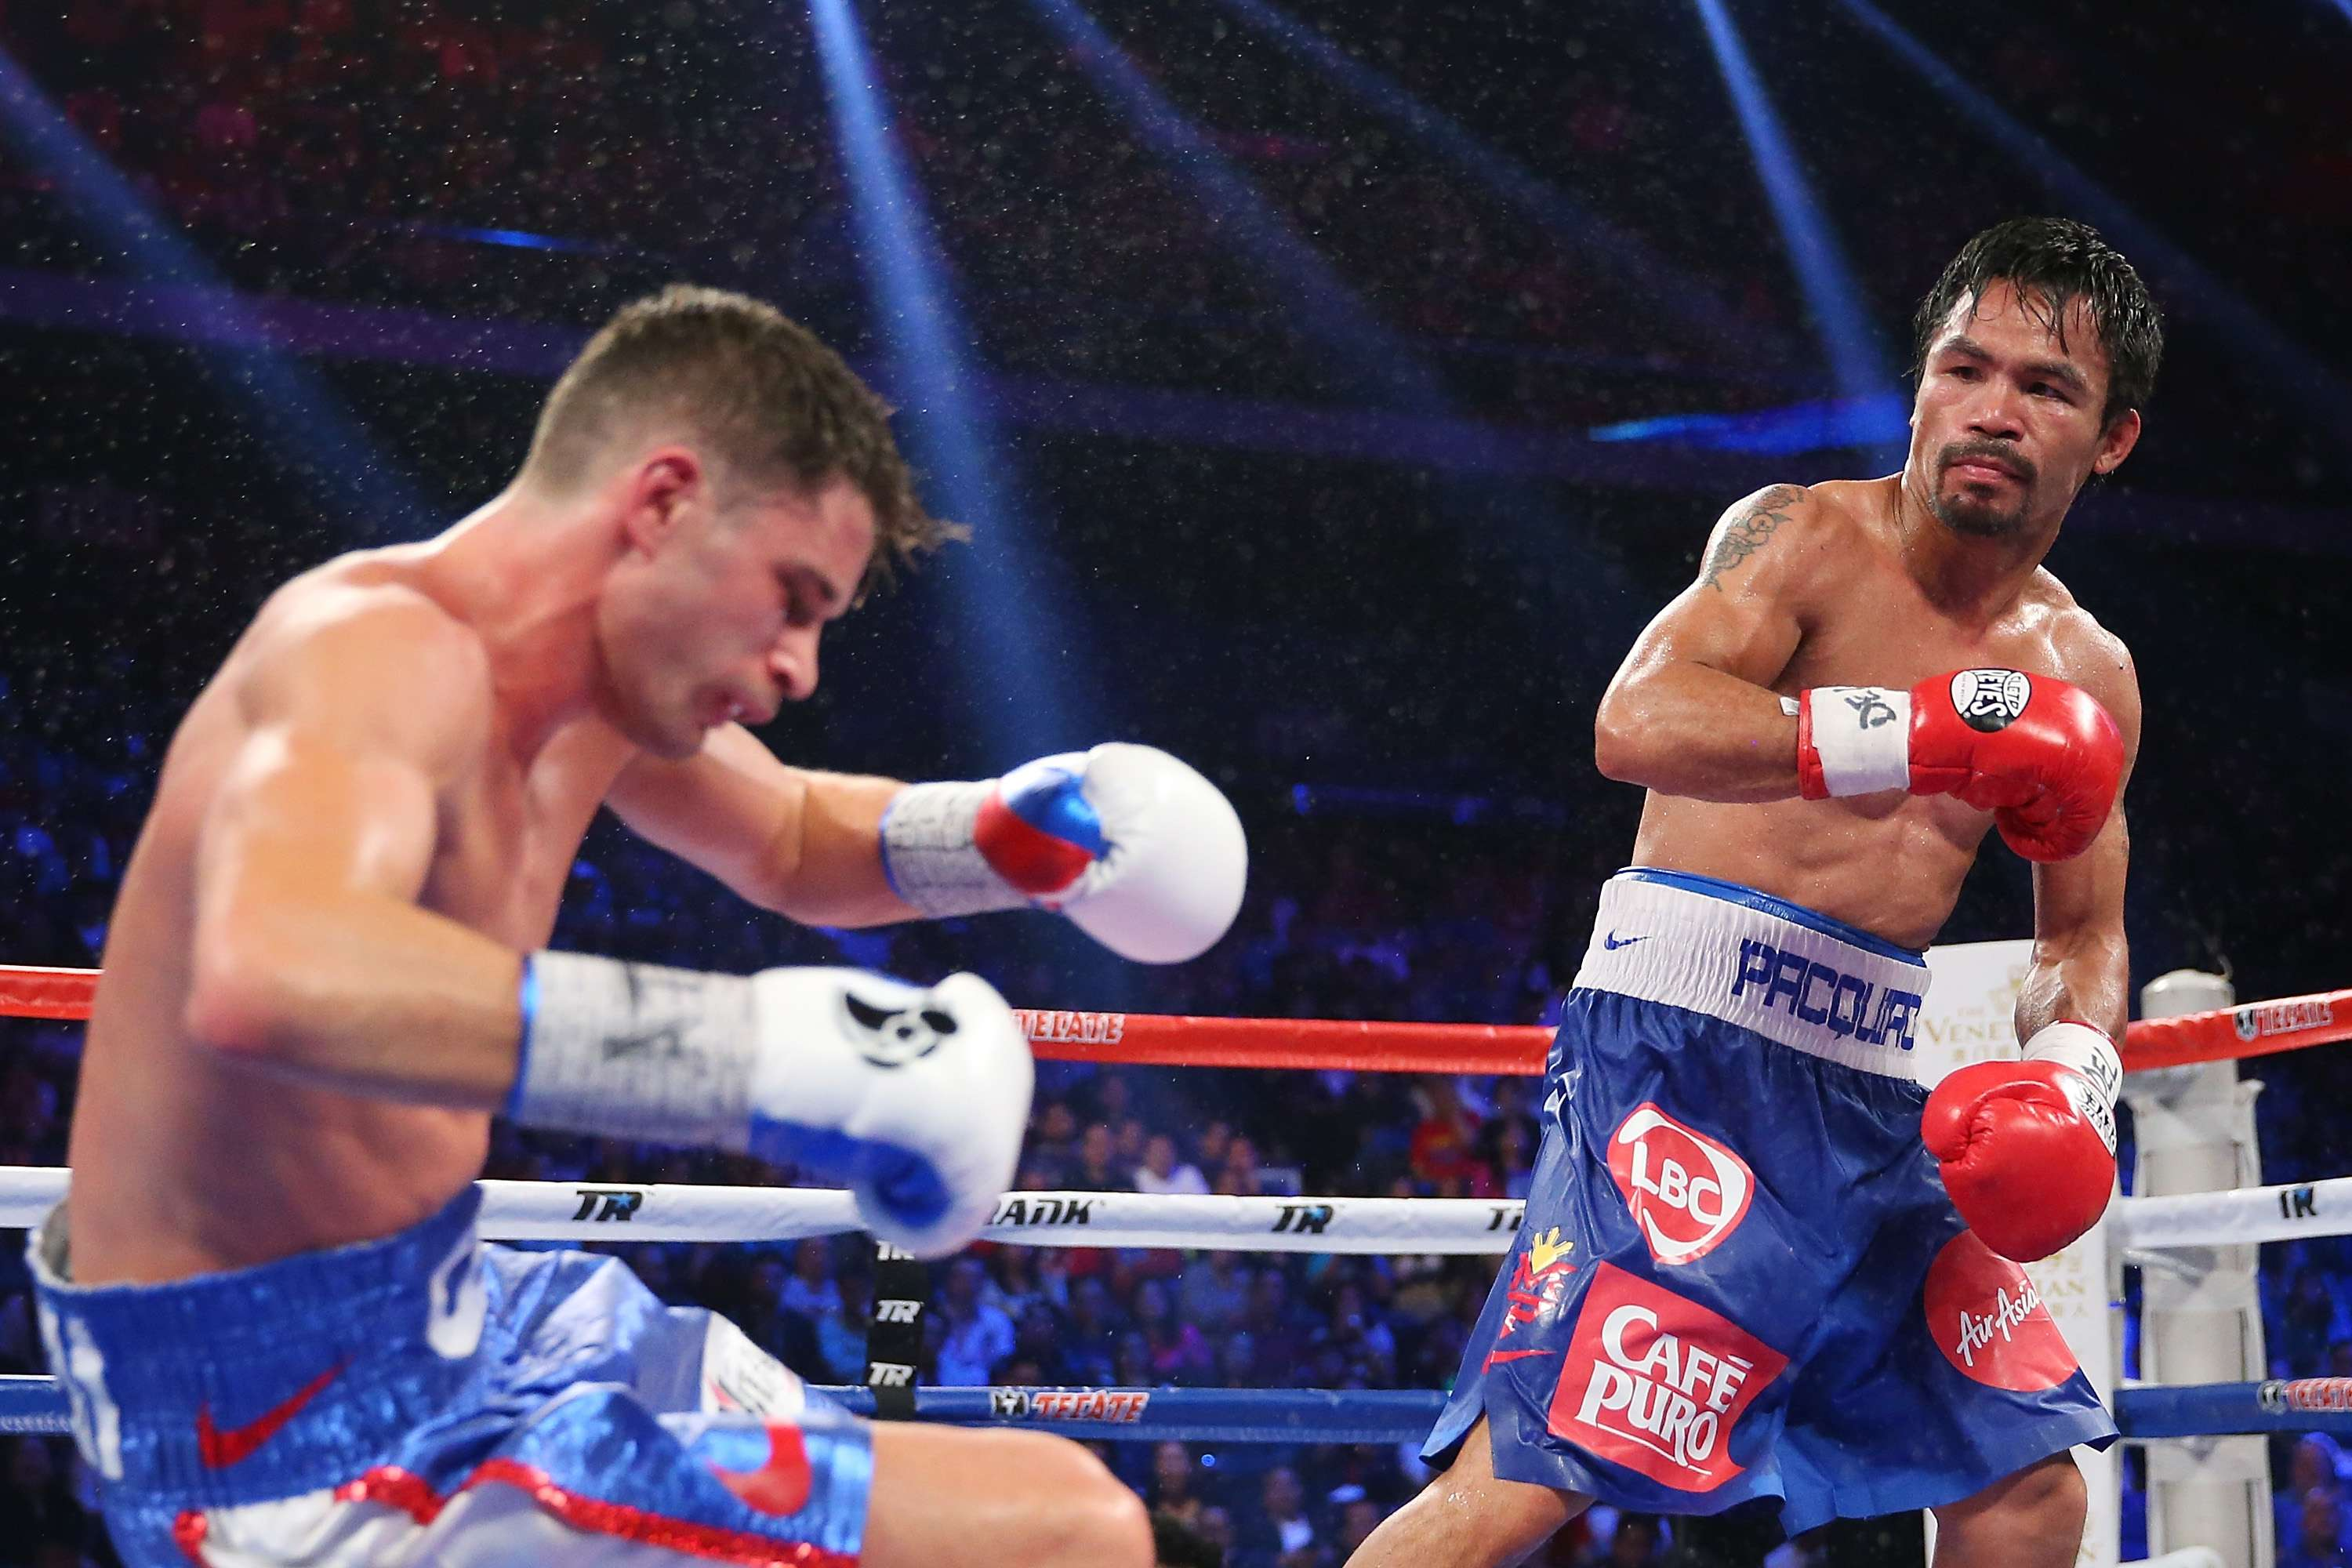 Manny Pacquiao domina a Chris Algieri y sigue como campeón. Foto: AP, AFP y Getty Images